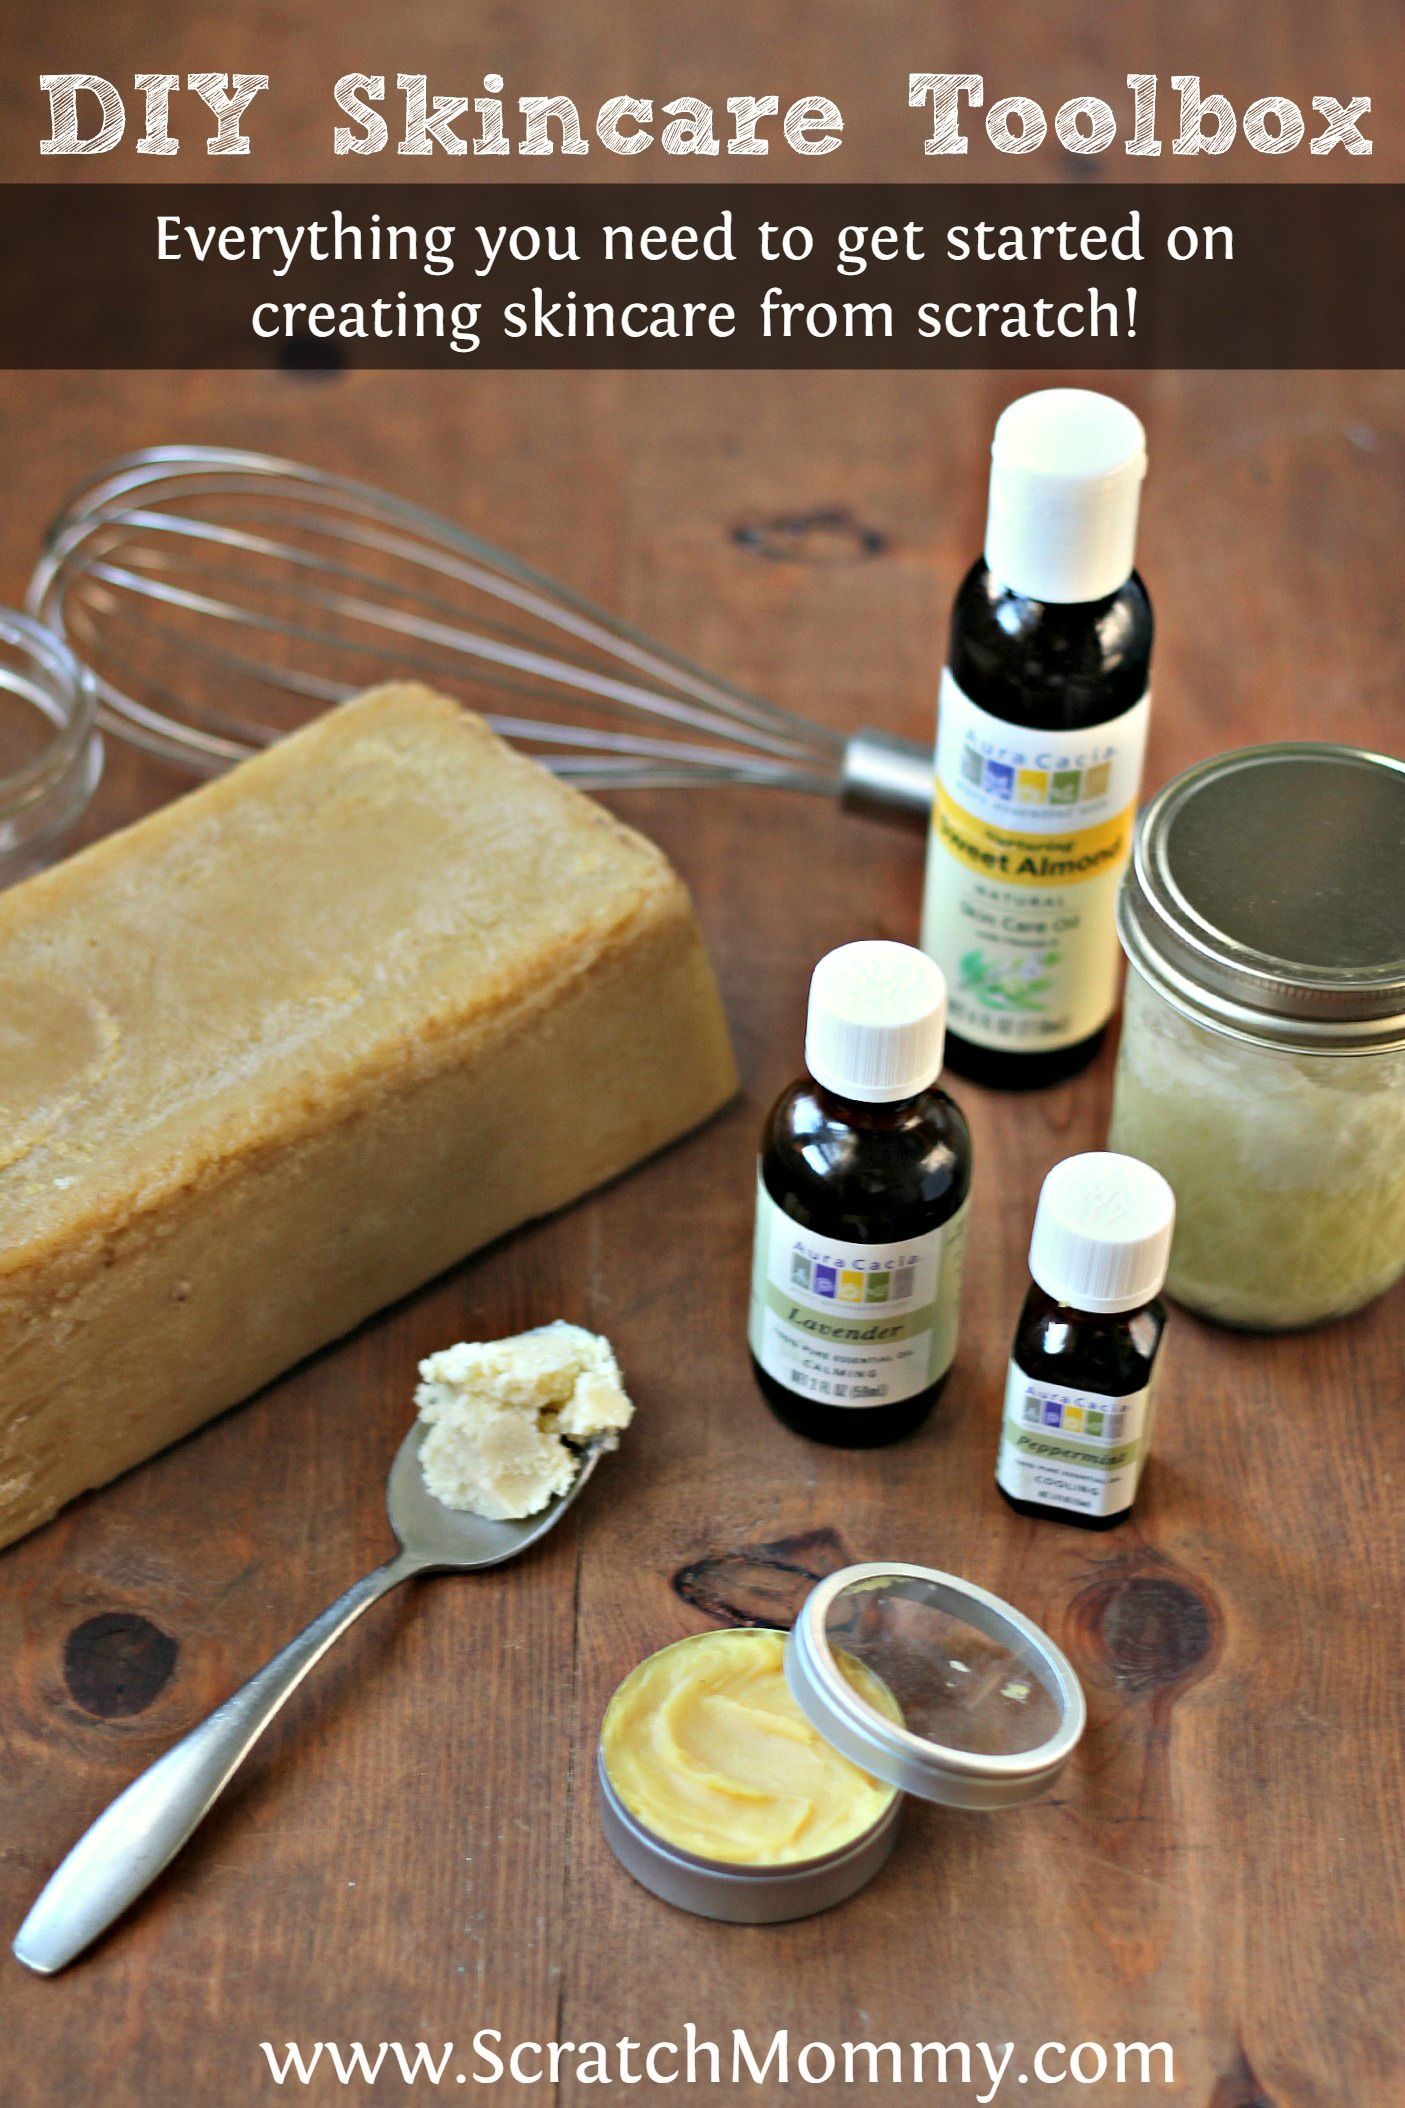 DIY Skincare Toolbox- Ingredients needed to start making your own skincare products | Scratch Mommy